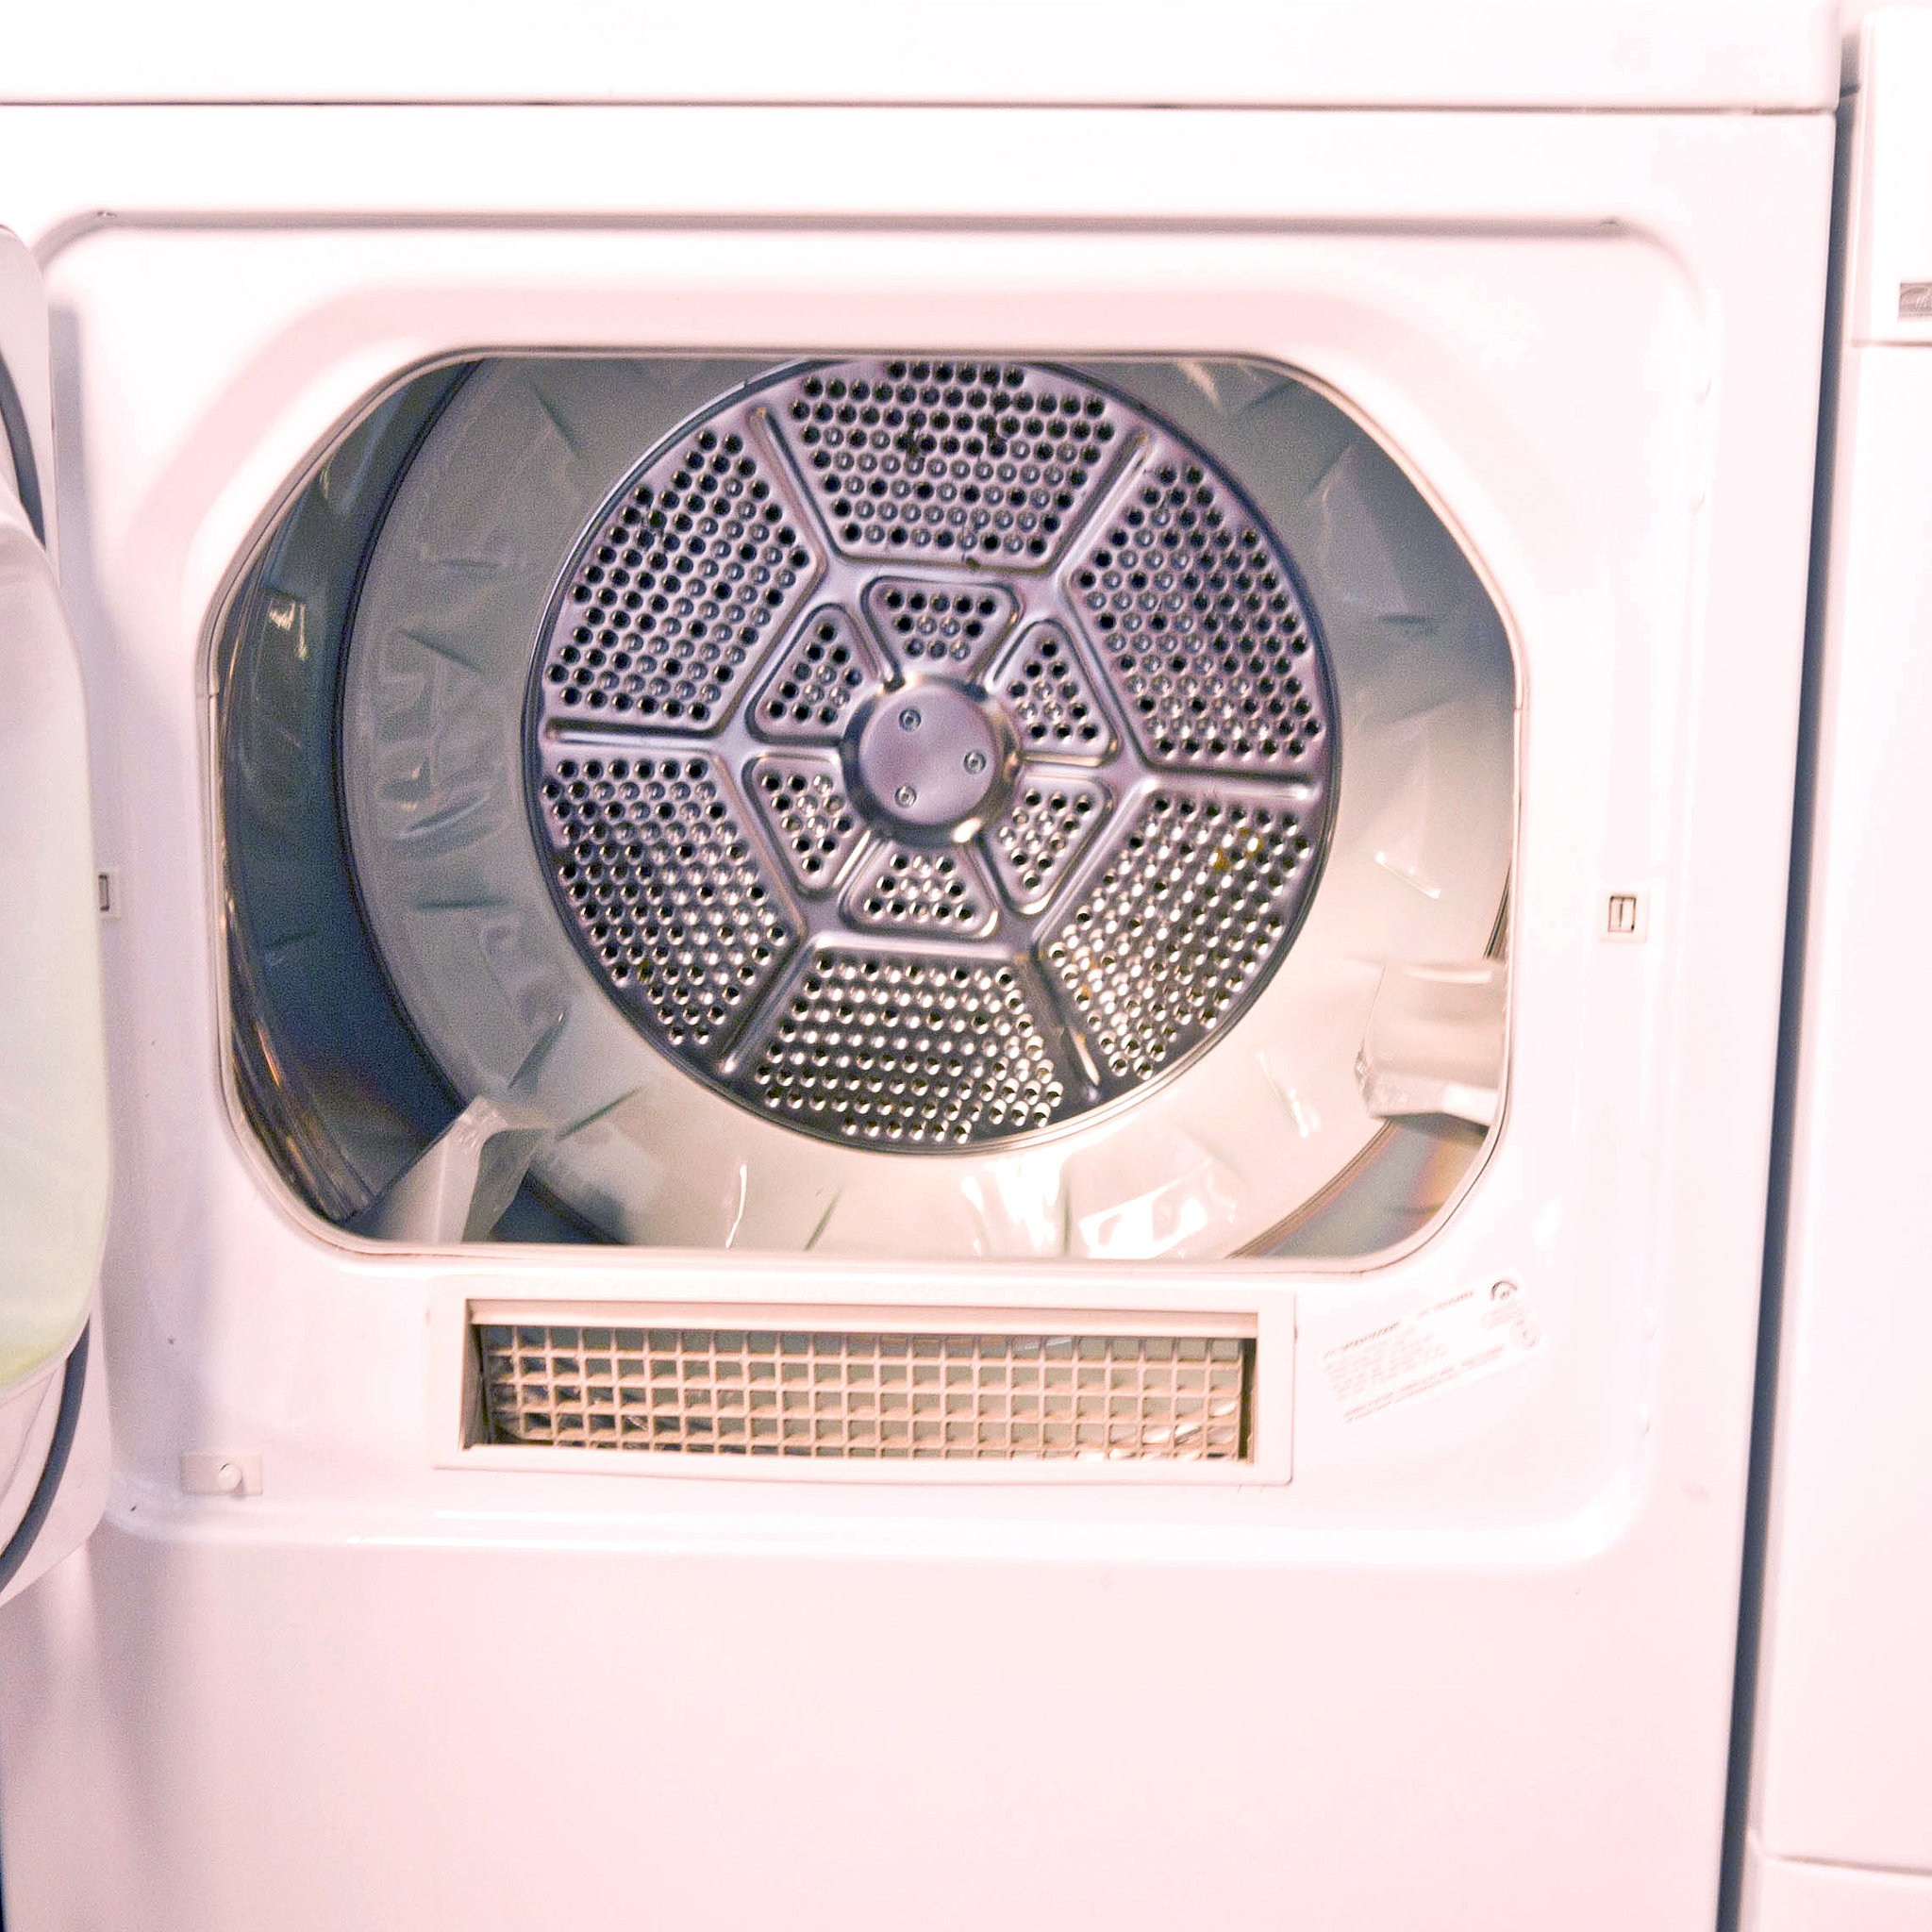 Popsugar Smart Living: How To Clean Your Clothes Dryer